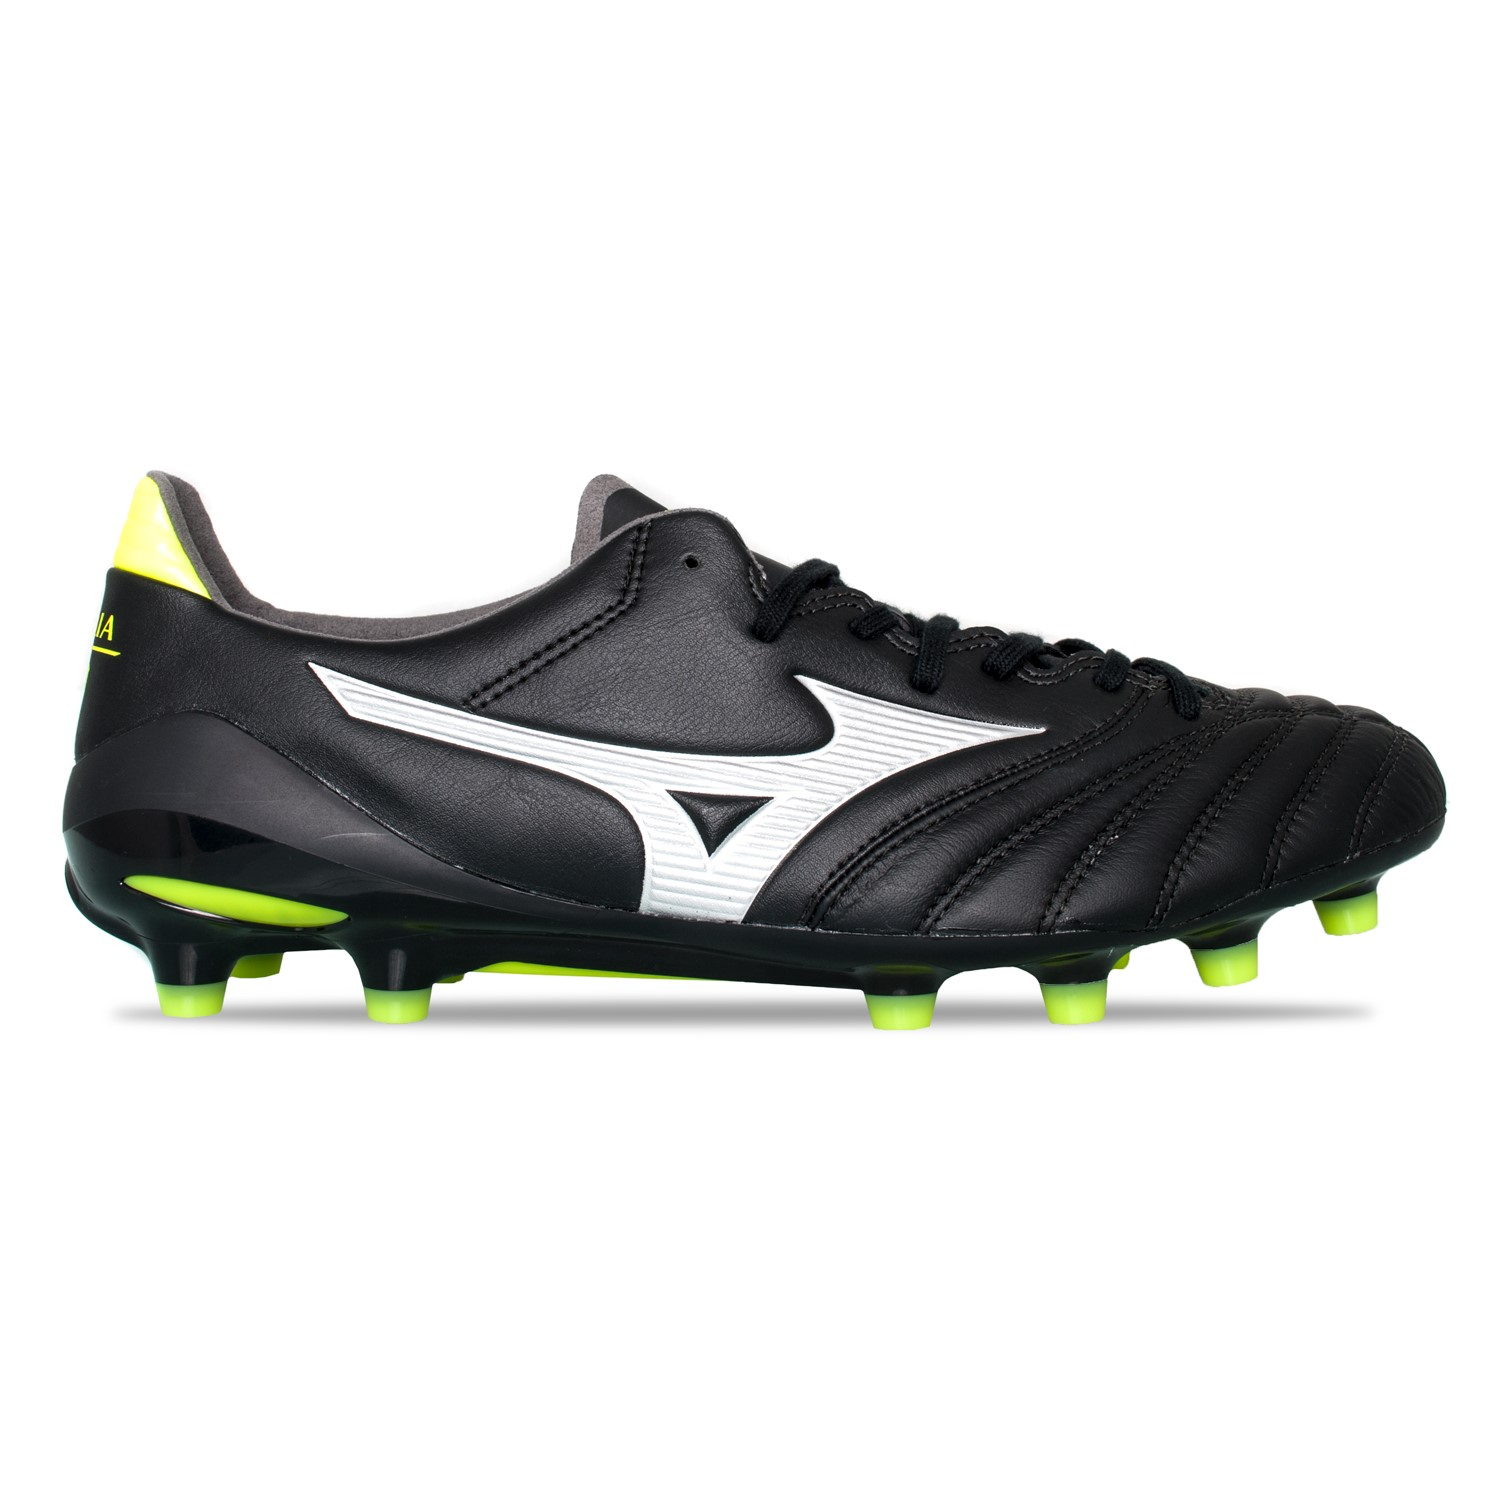 the latest 7ba41 67468 Mizuno Morelia Neo II MD - Mens Football Boots - Black Safety Yellow